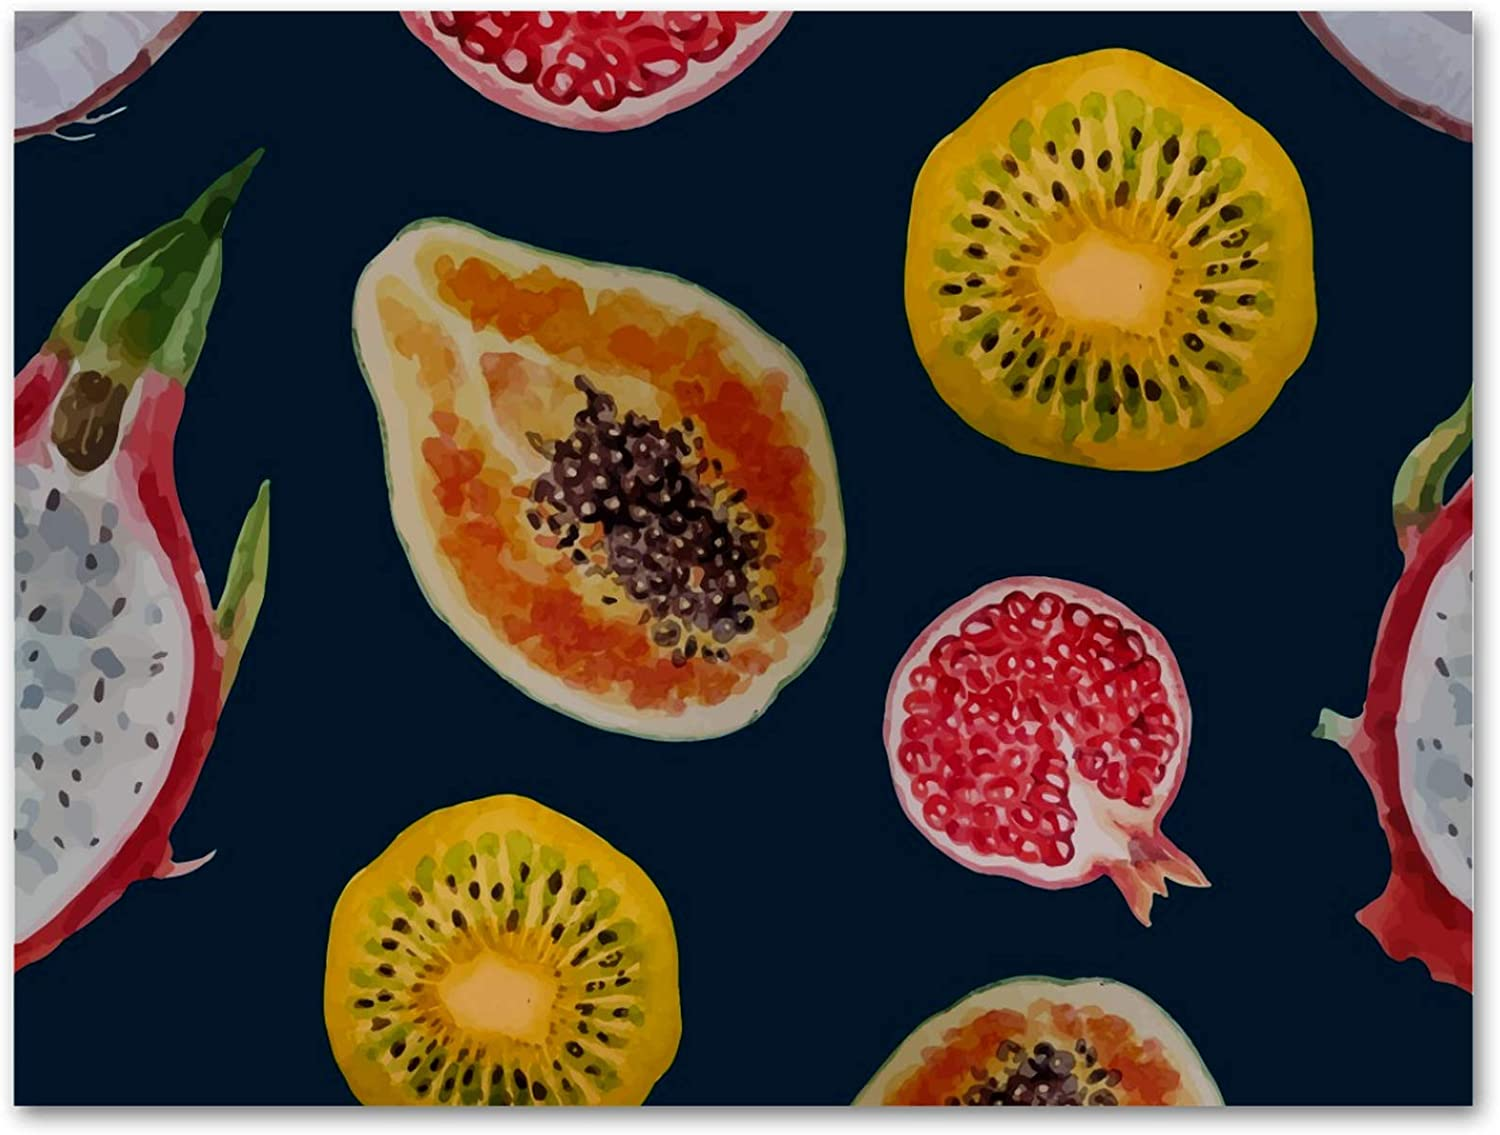 imobaby Oil Painting on Canvas Tropical Dragon Fruits Papaya Kiwi Coconut Prints with Wooden Frame for Bedroom Home Living Room Office Modern Wall Art Decor, 11.8x19.6 in